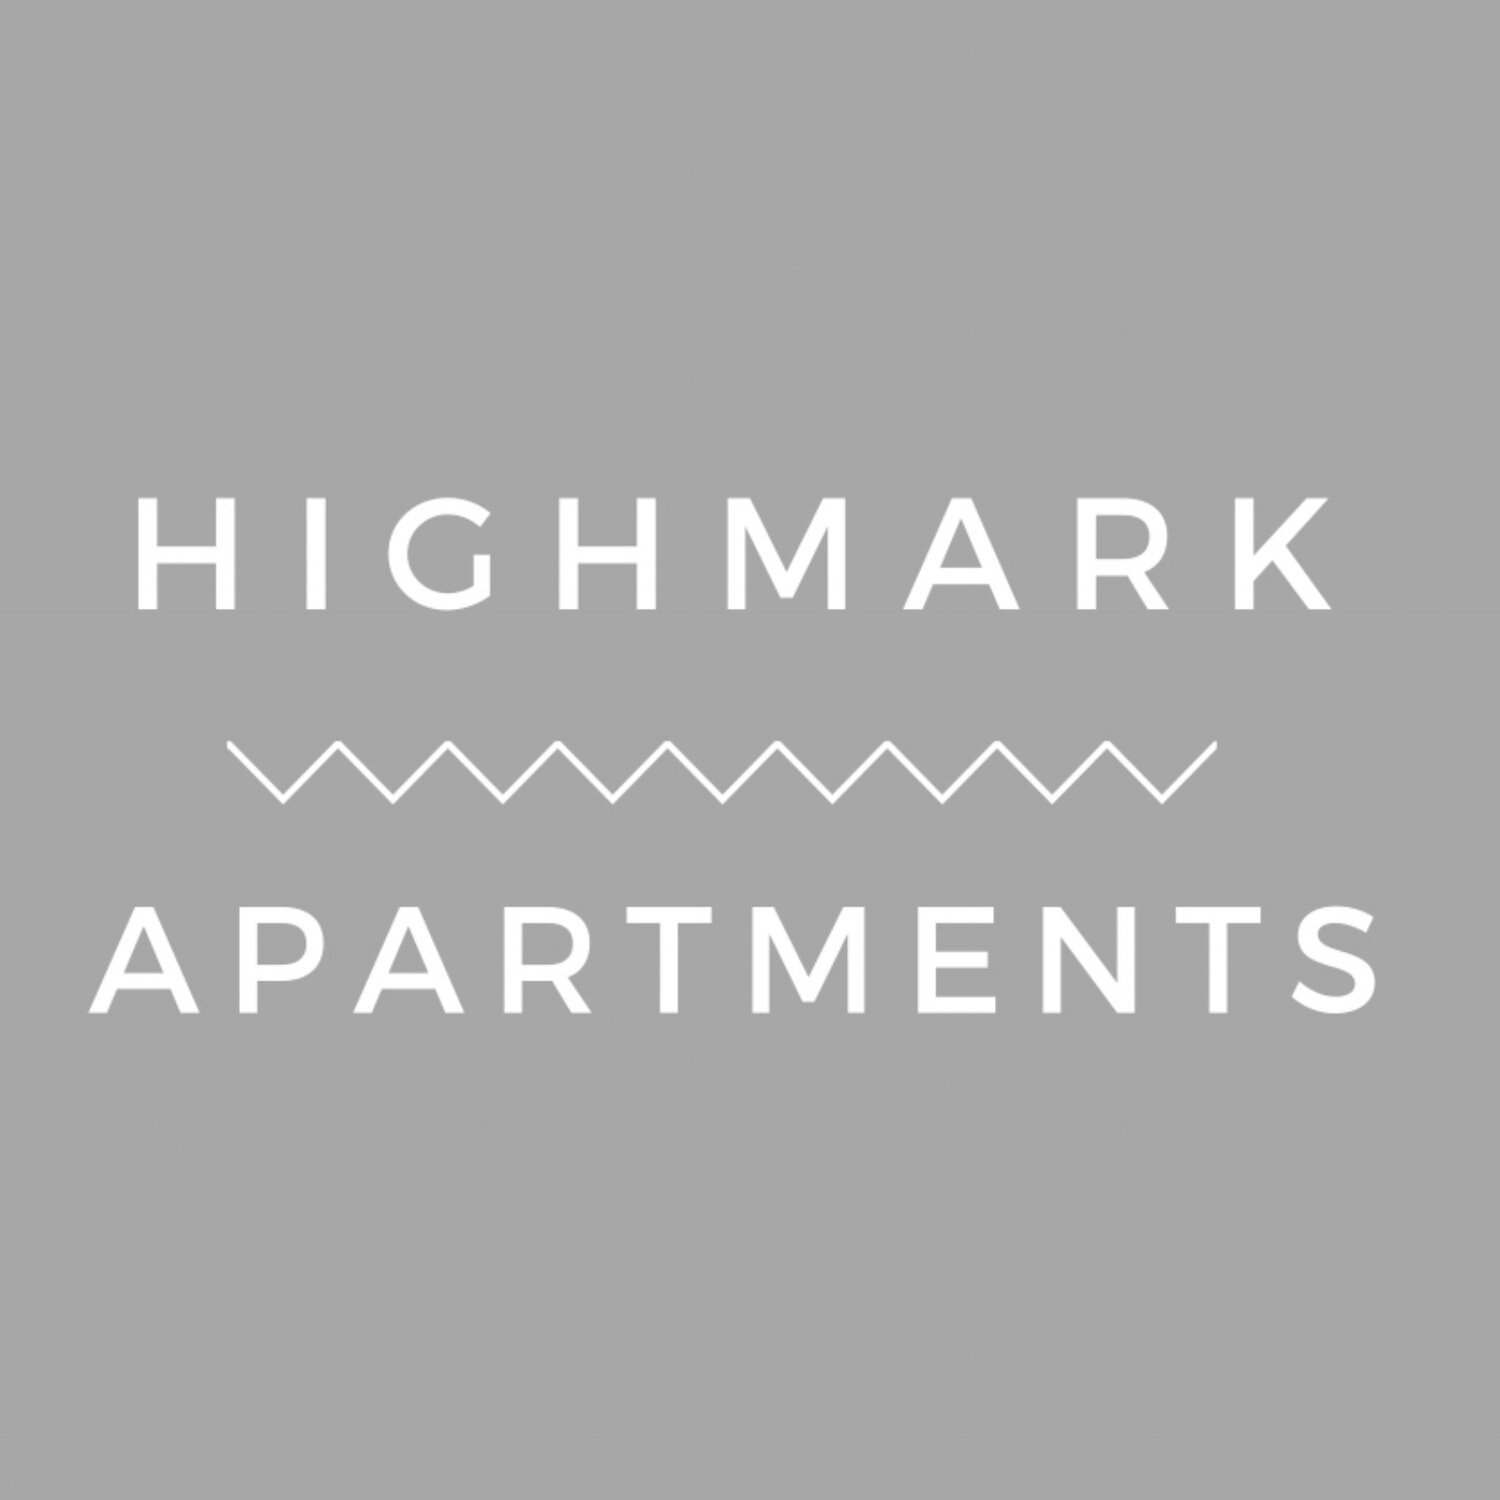 HIGHMARK Apartments